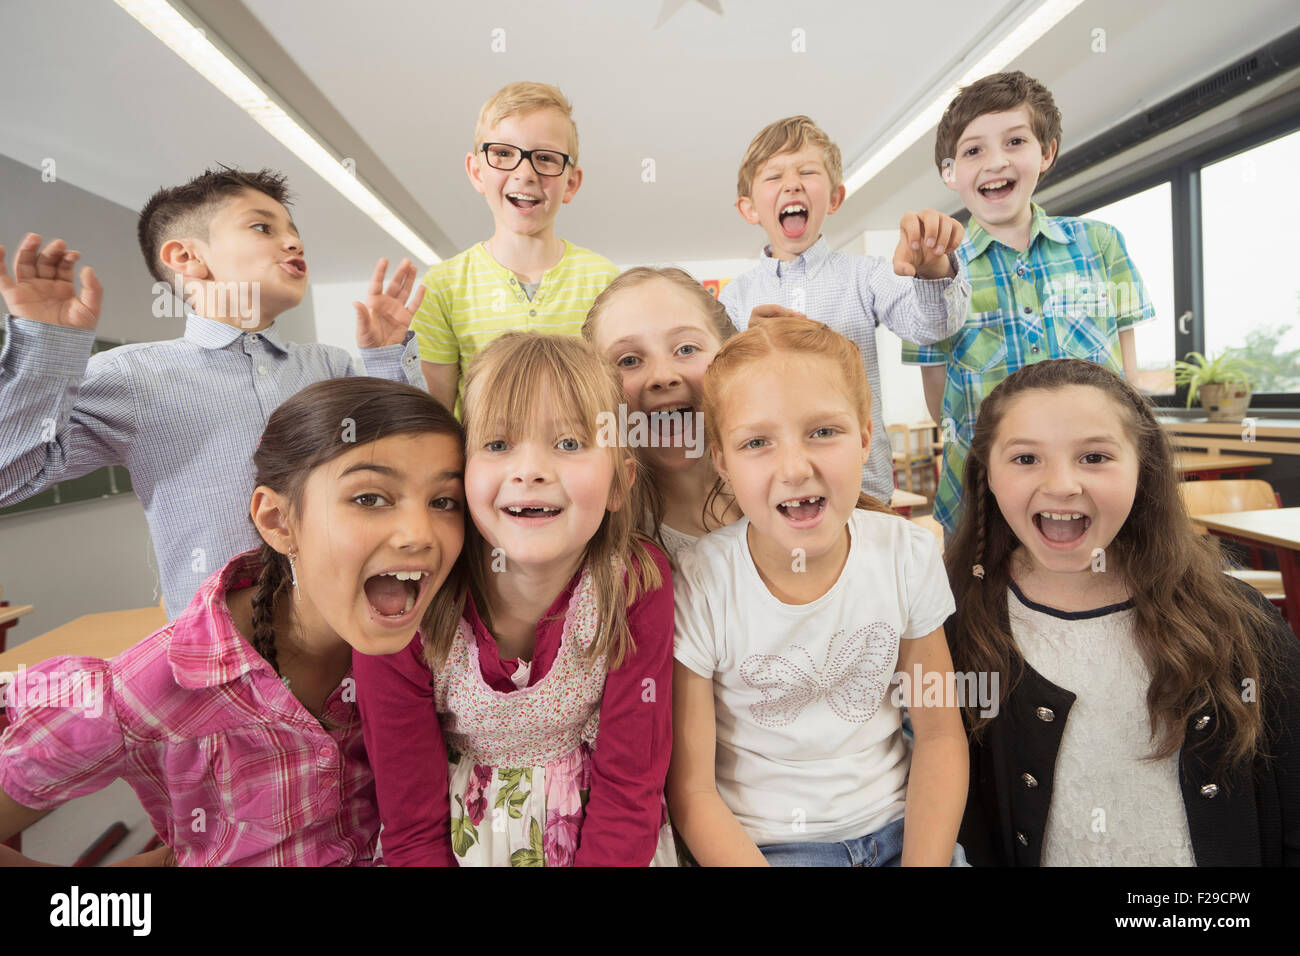 Group of schoolchildren having fun in classroom, Munich, Bavaria, Germany - Stock Image